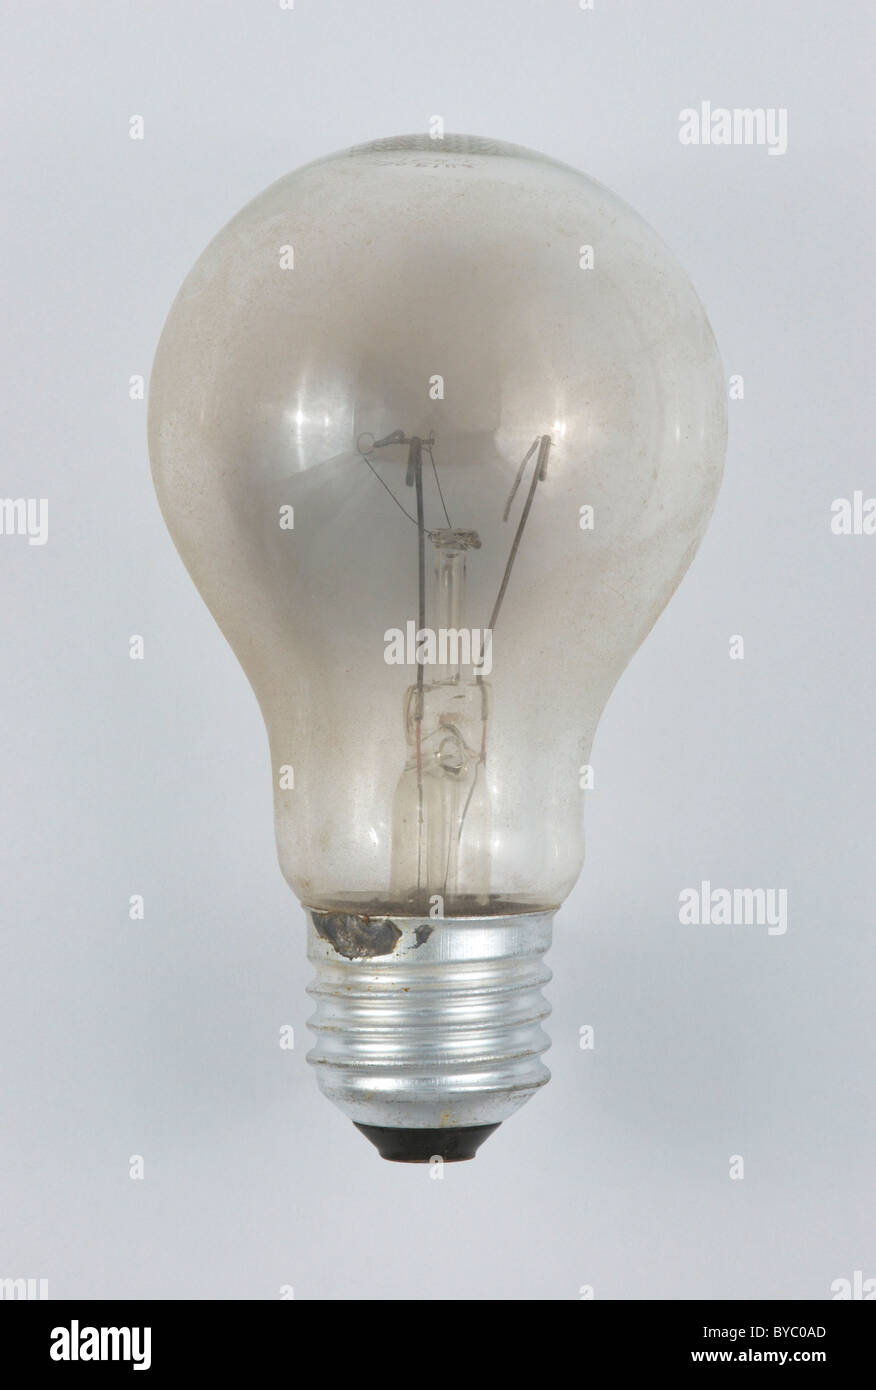 Broken Light Bulb Clean